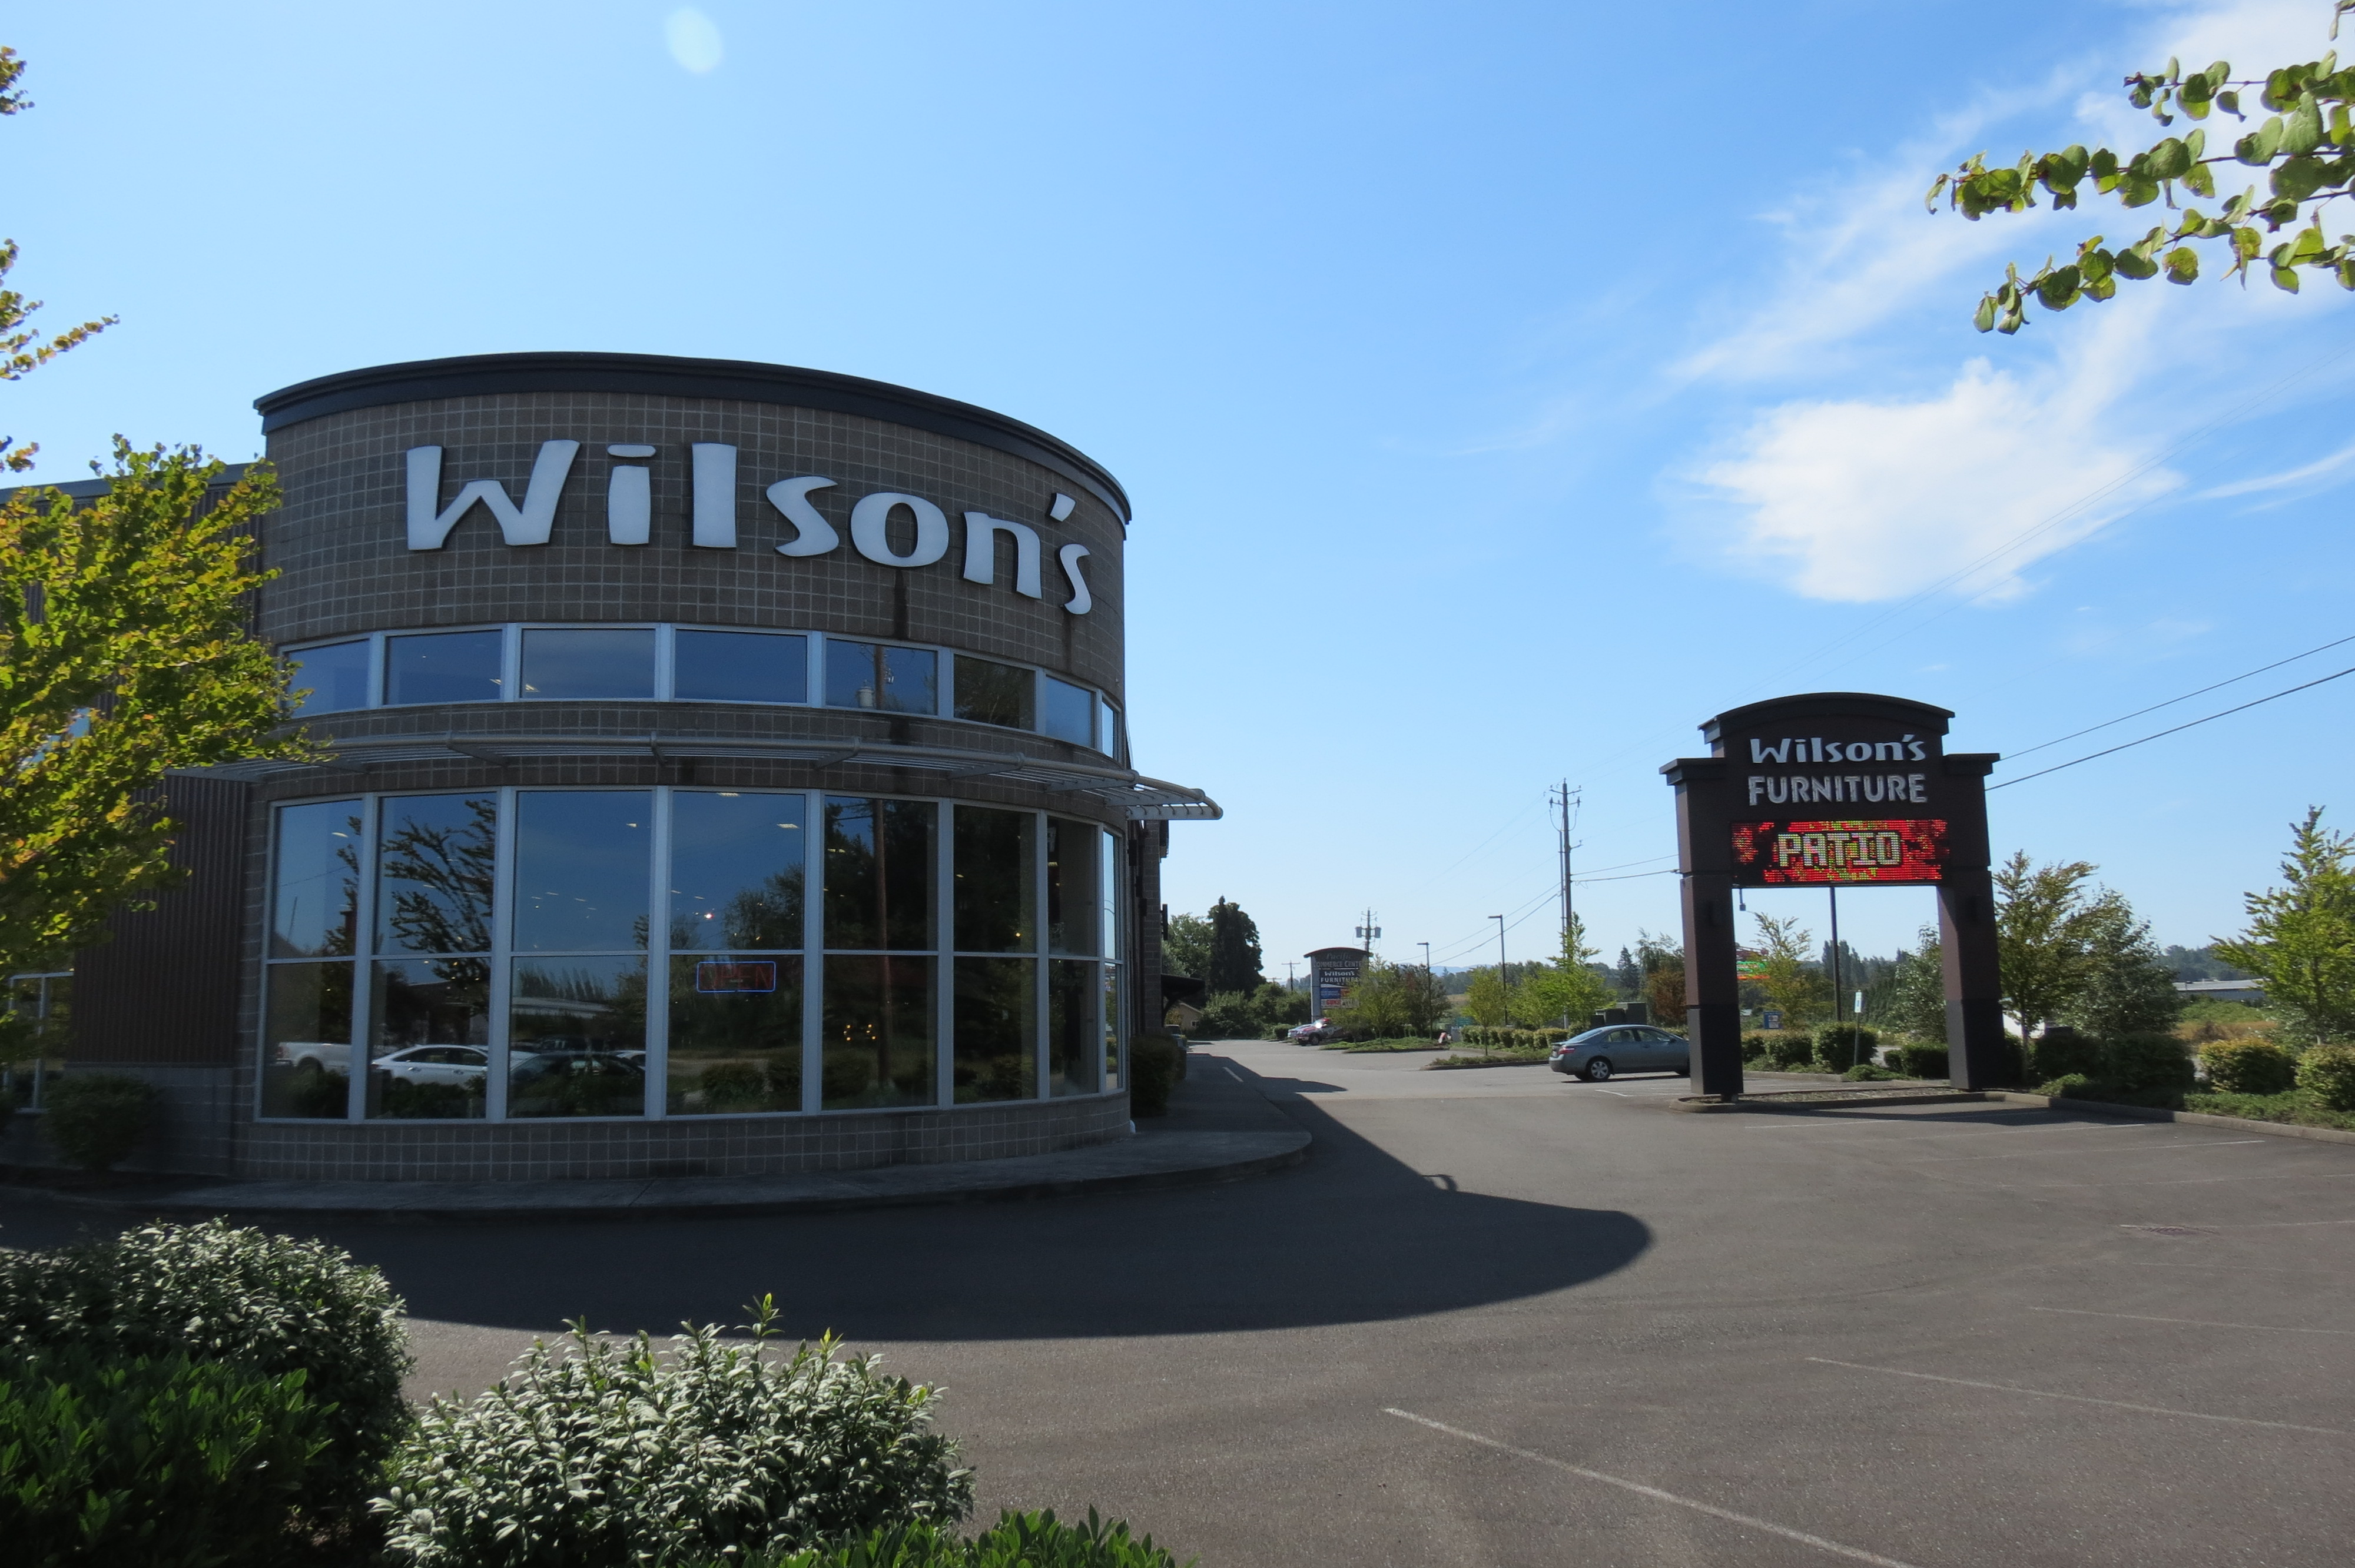 Wilson's Furniture location at 5080 Pacific Highway (July 17, 2018). Photo: My Ferndale News